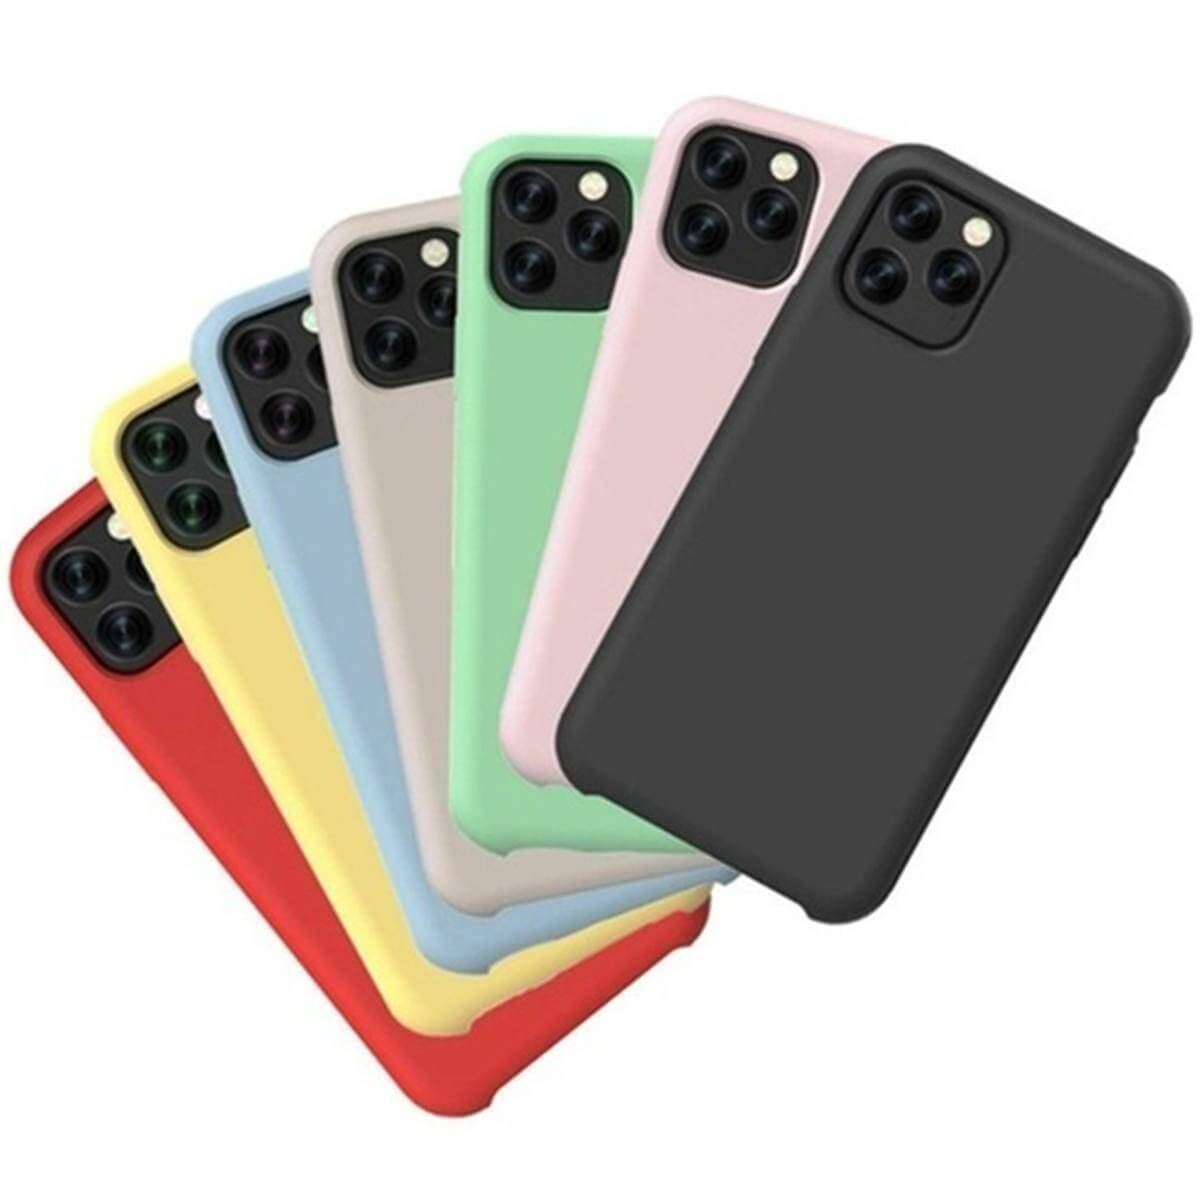 Liquid-Silicone-Shockproof-Case-For-Apple-iPhone-Soft-Matte-Back-Phone-Cover thumbnail 29